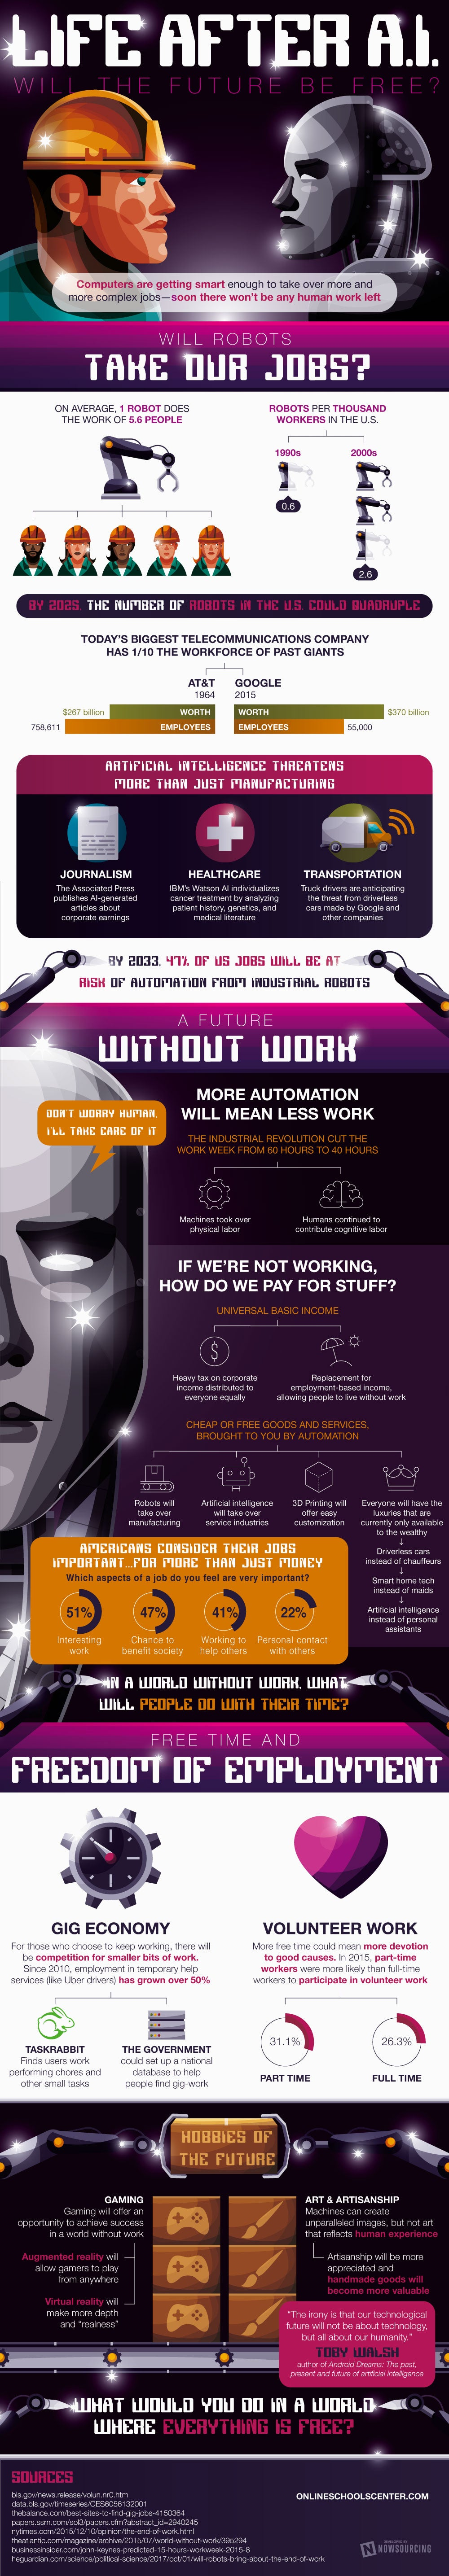 What Will the Future of Work Look Like After the Robot Revolution? (Infographic)